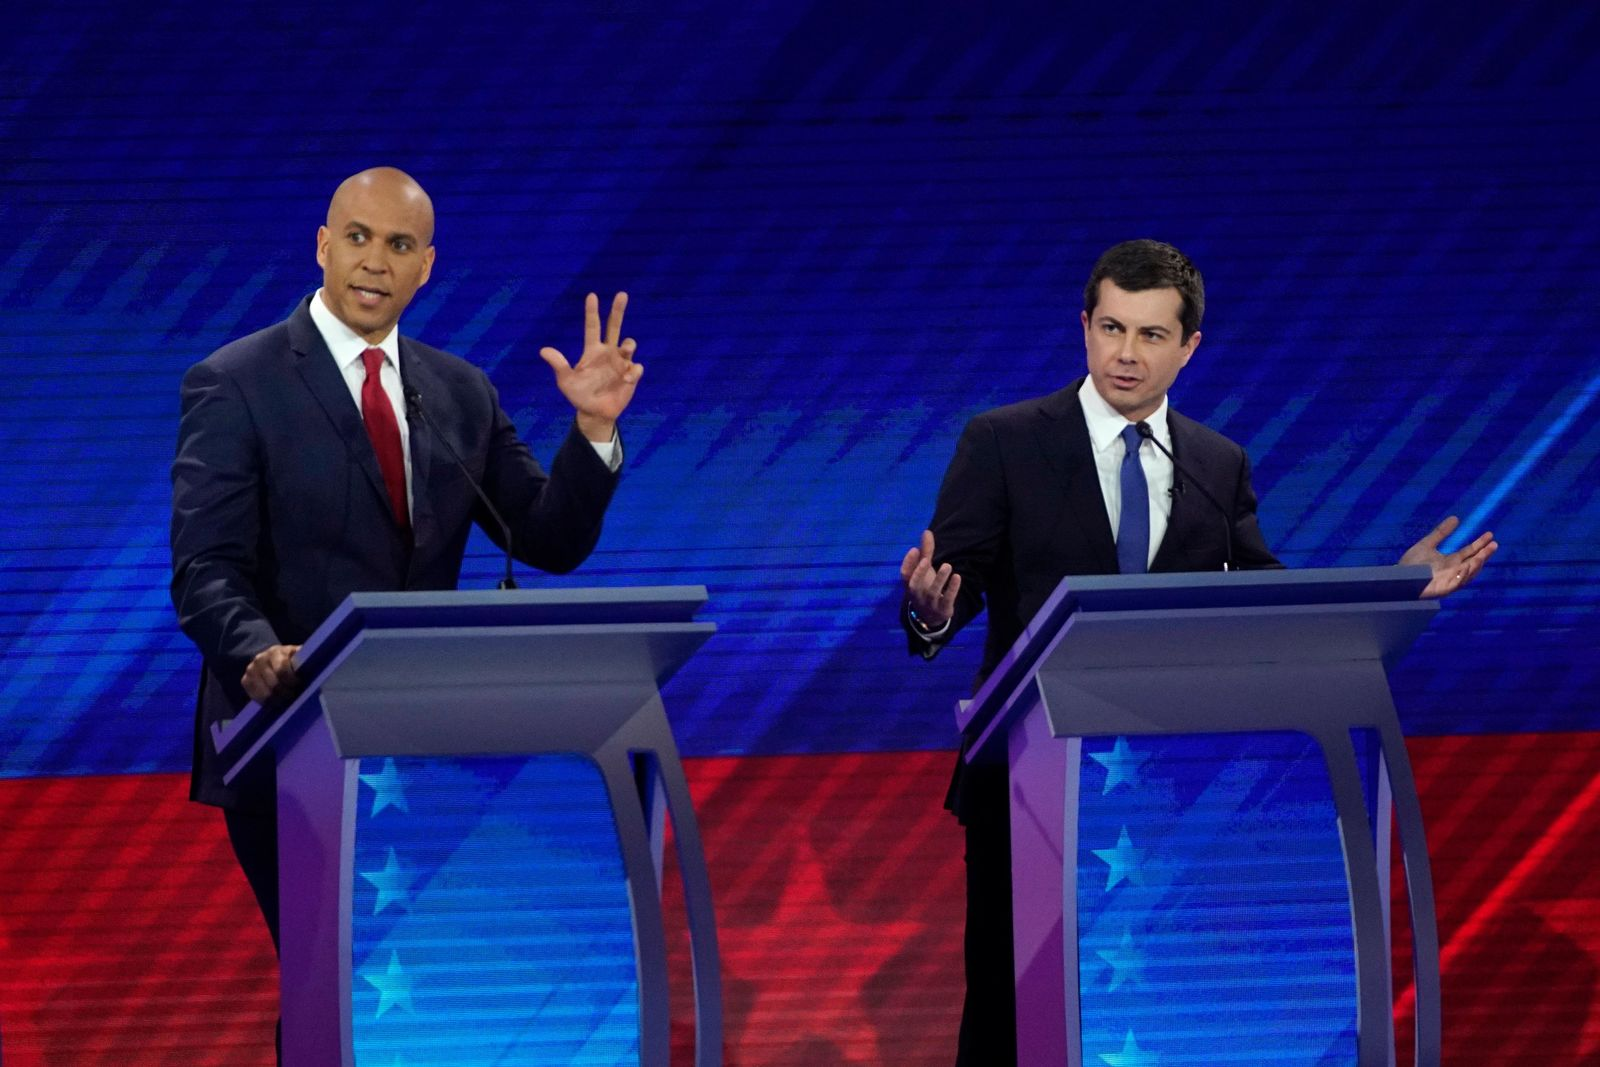 Sen. Cory Booker, D-N.J., left, and South Bend Mayor Pete Buttigieg, right, try to respond to a question Thursday, Sept. 12, 2019, during a Democratic presidential primary debate hosted by ABC at Texas Southern University in Houston. (AP Photo/David J. Phillip)